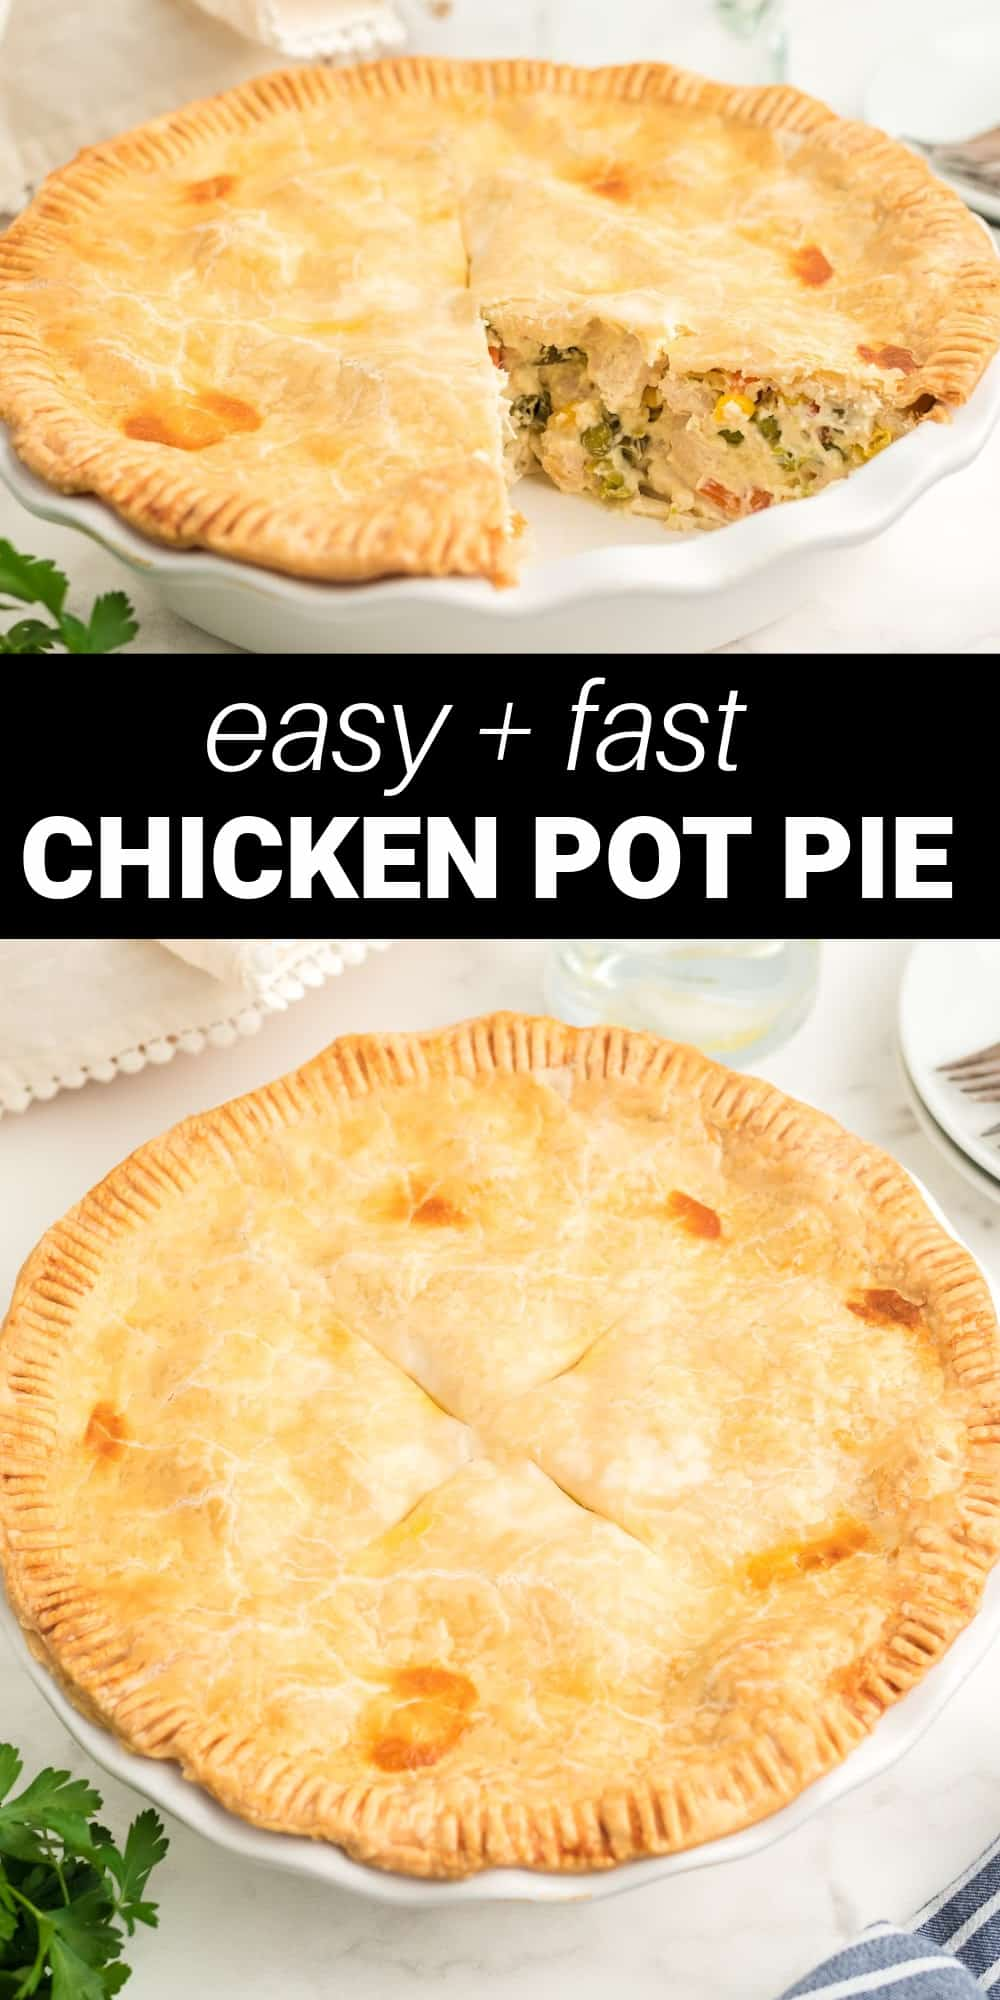 This easy chicken pot pie is the ultimate comfort food with a flaky pie crust, creamy sauce and a chicken and vegetable filling that's seasoned to perfection. Using two premade pie crusts makes this recipe a breeze! This is a hearty meal any time of year.